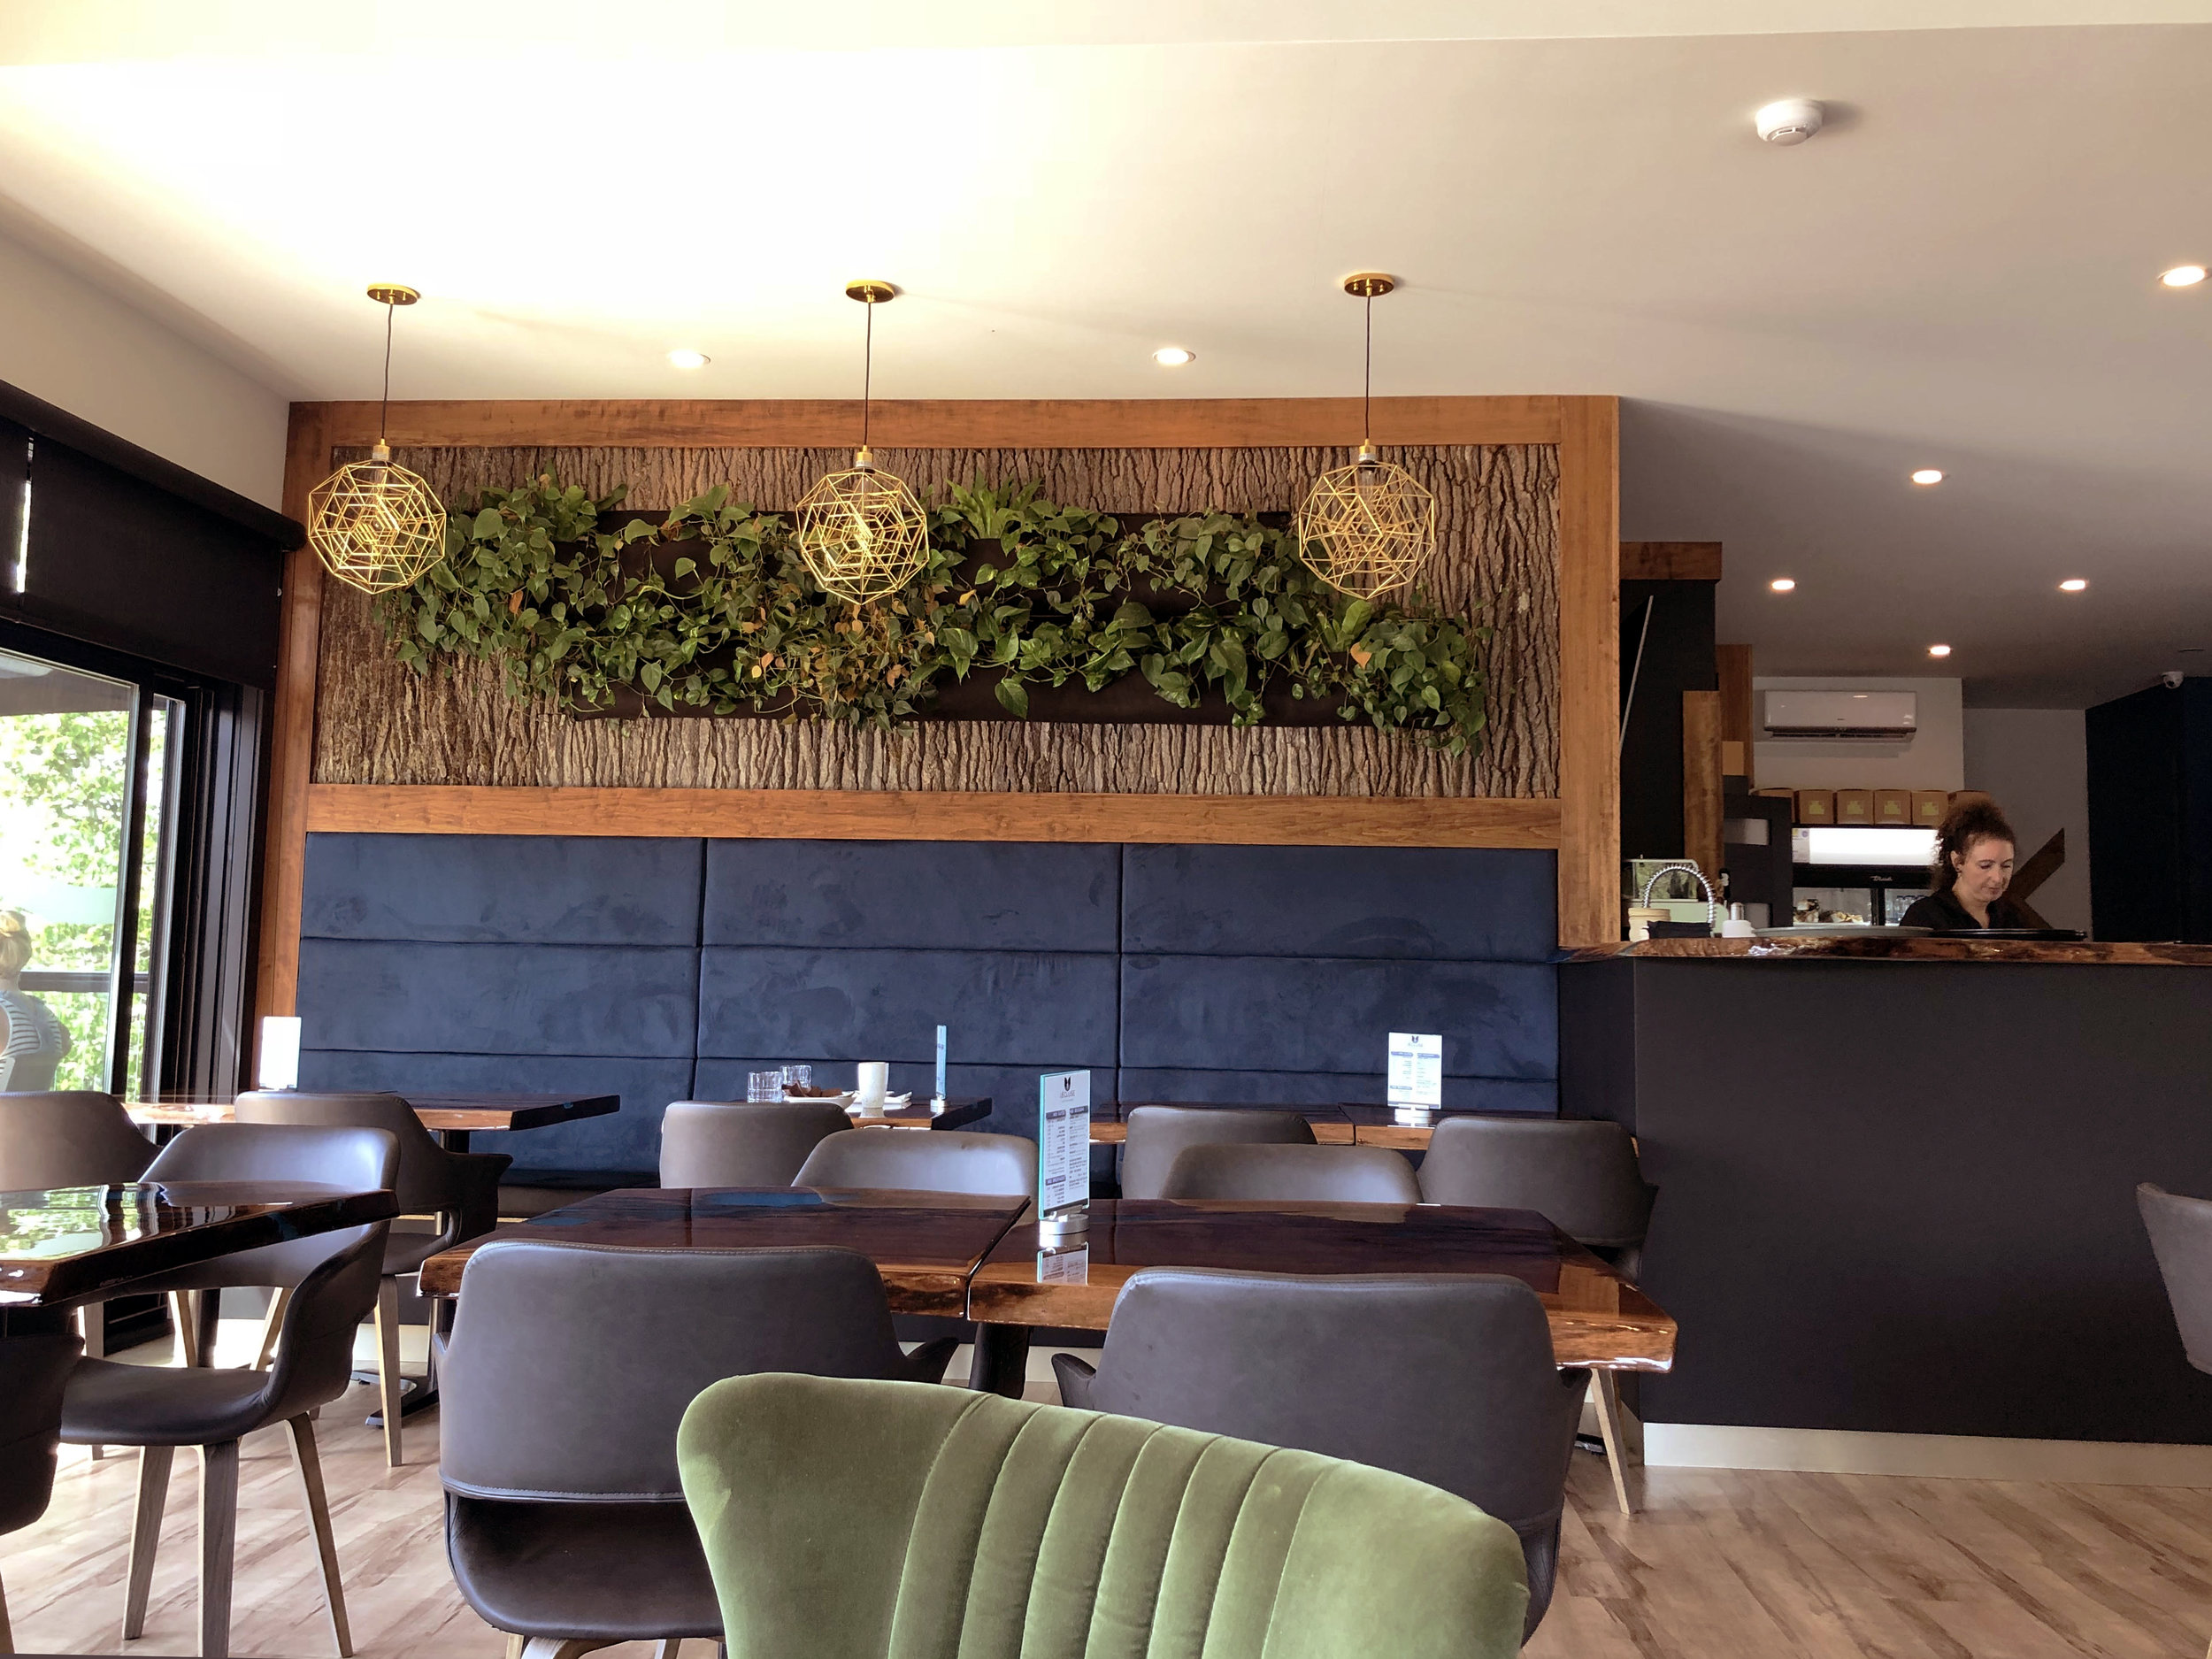 living-plant-wall-and-light-fixtures.jpg